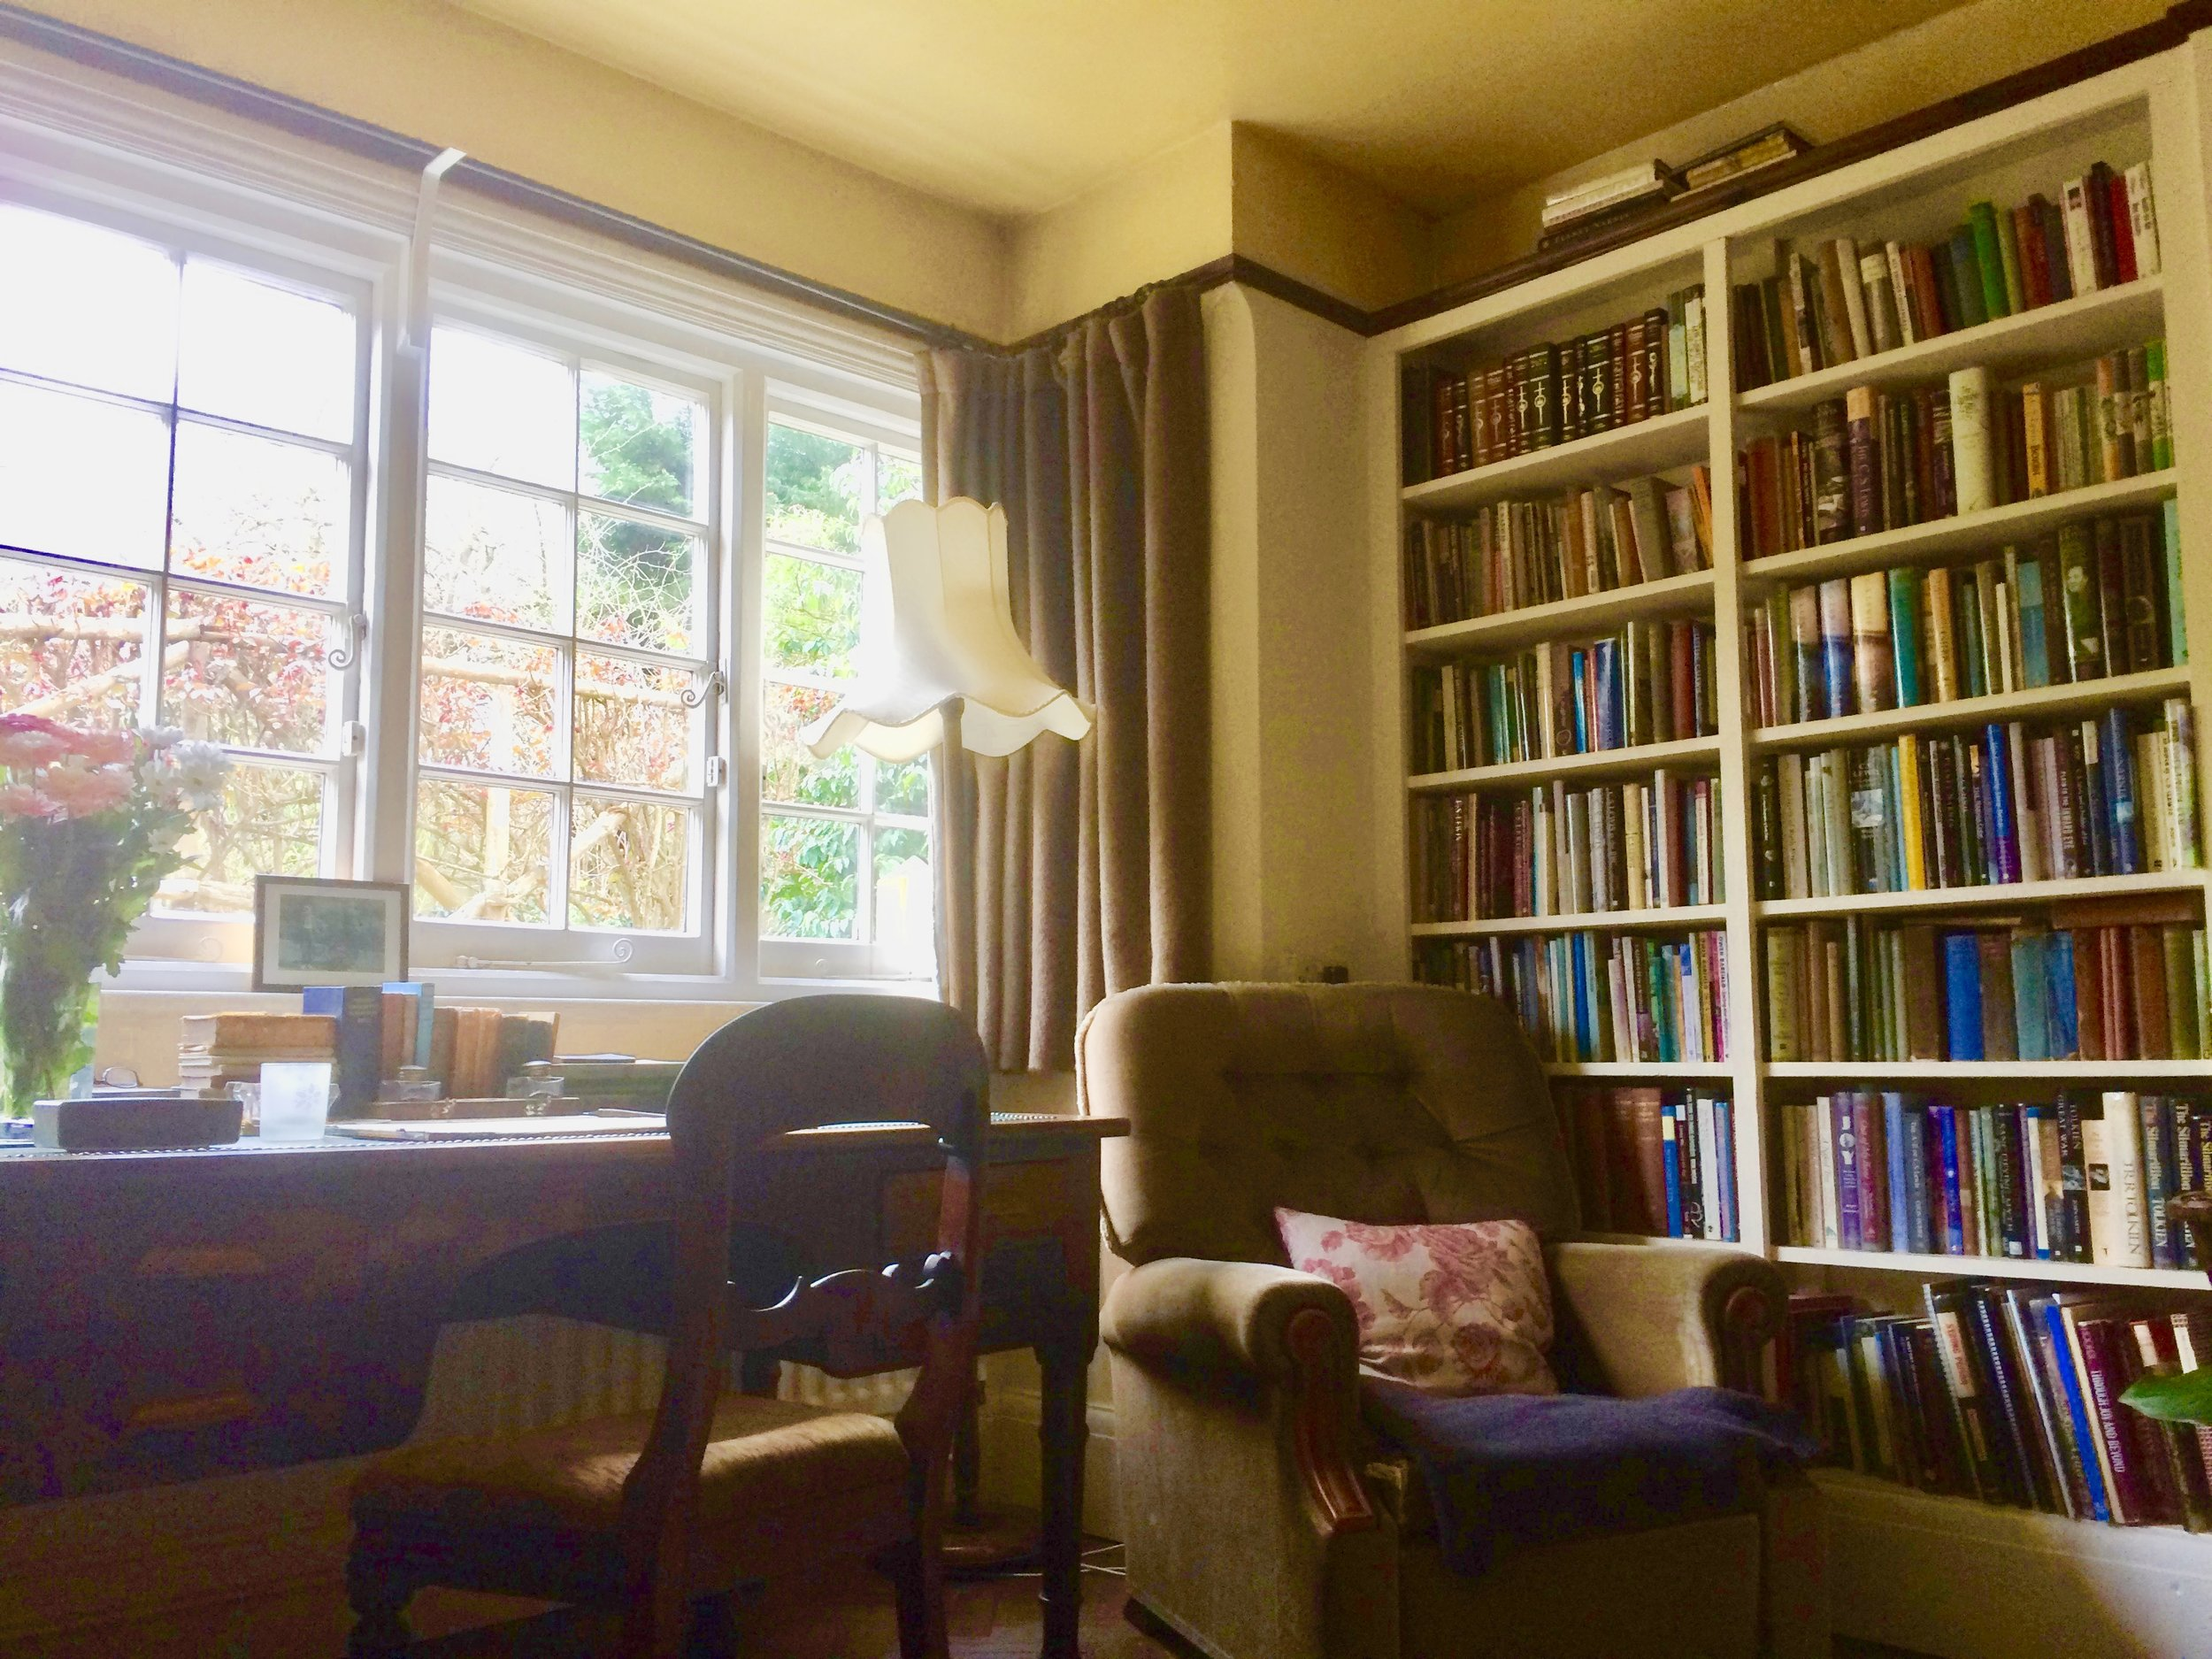 The Sitting Room where C.S. Lewis wrote his books at his home, the Kilns.